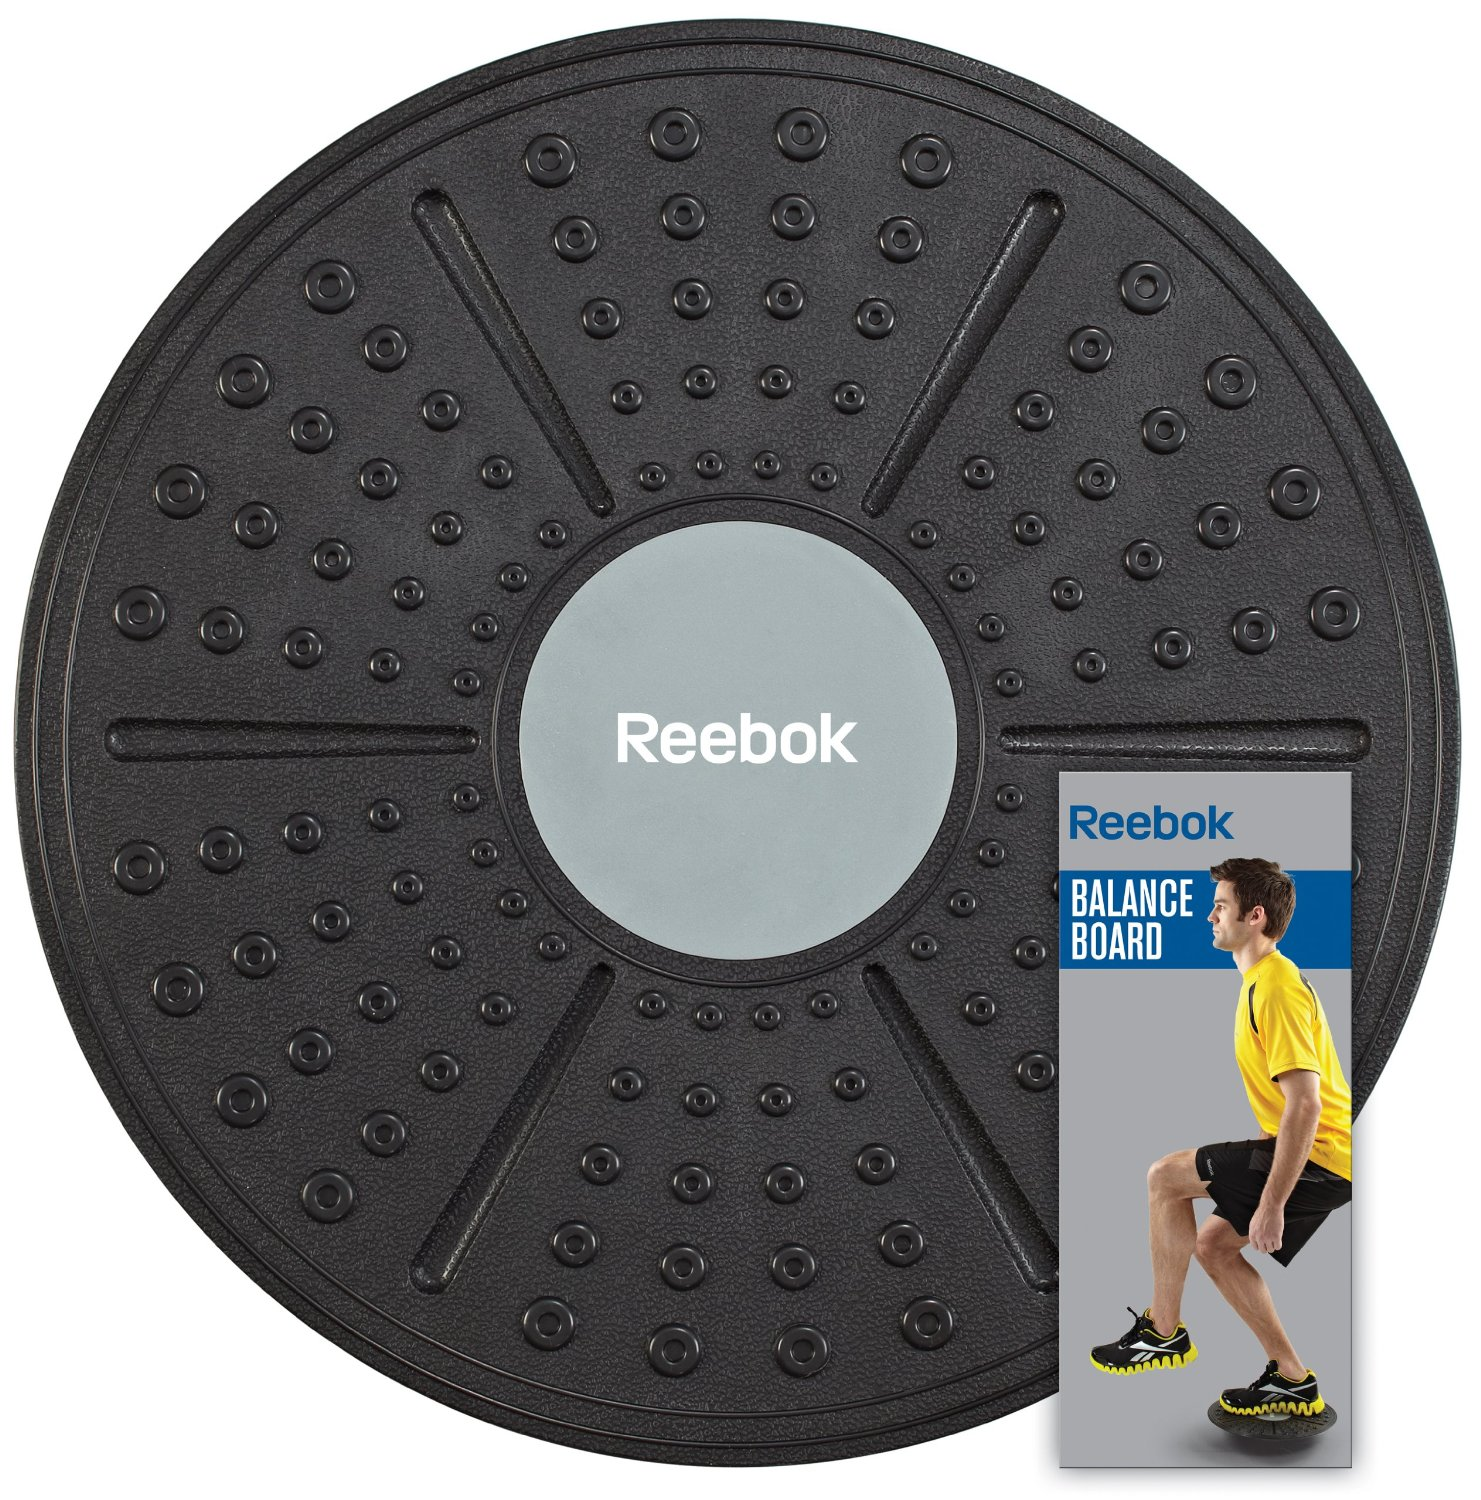 Balance Board Workout: Featured Exercise & Fitness: Reebok Balance Board